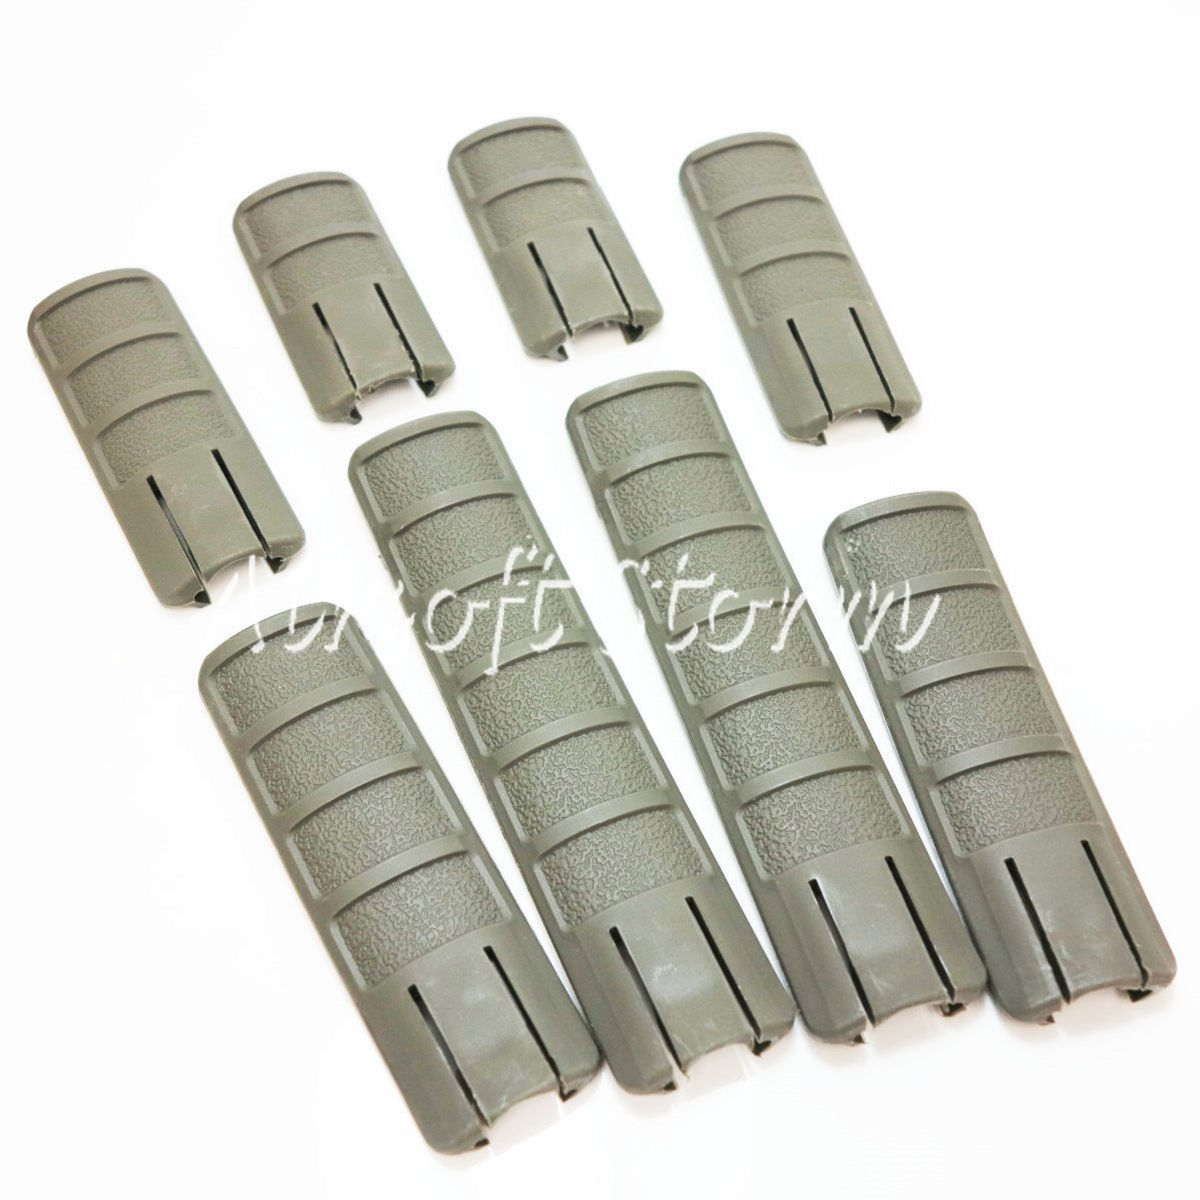 8pcs Set Airsoft Tactical Gear Energy TD Battle Grip Type Rail Cover Panel ACU Foliage Green FG